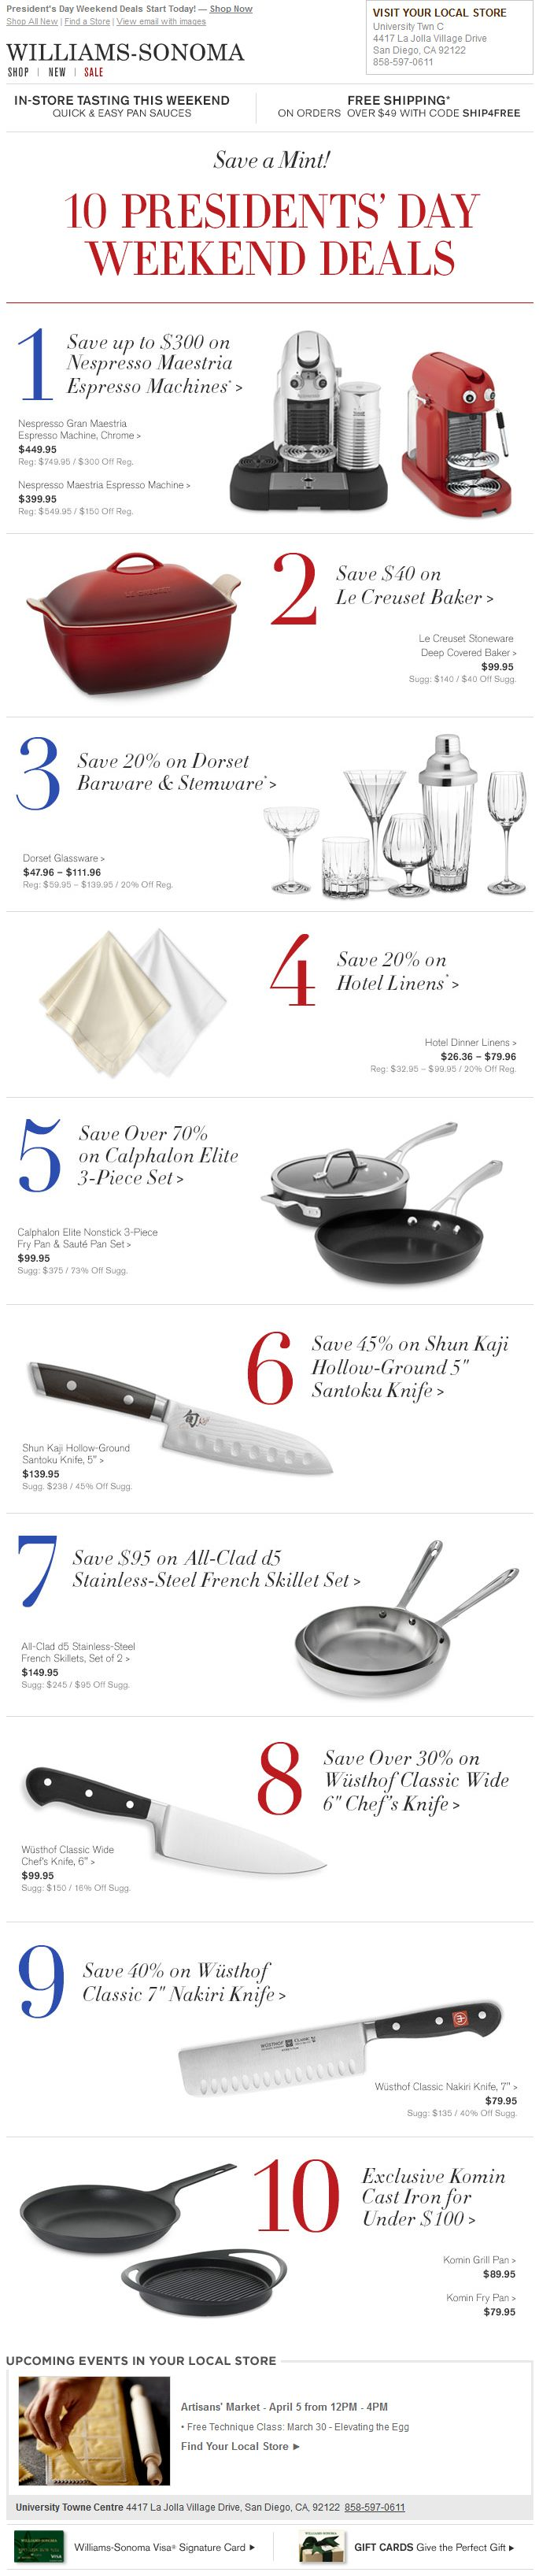 """Williams-Sonoma - Presidents Day weekend deals; CT """"Save a Mint""""; outlined the category offers; good mix of pp, % off and up to $ off"""